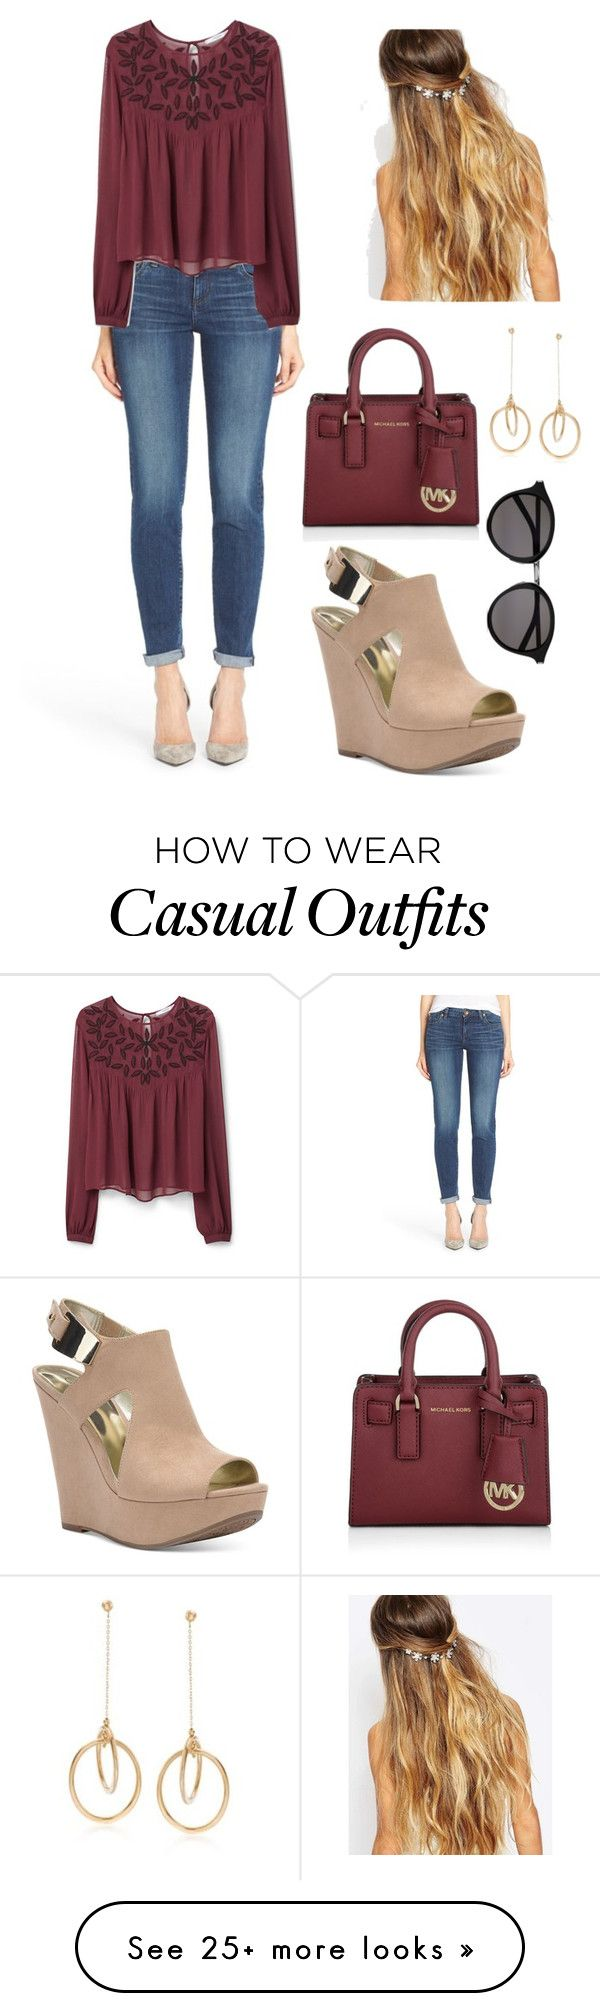 """Casual"" by aowens99 on Polyvore featuring KUT from the Kloth, MANGO, Johnny Loves Rosie, Carlos by Carlos Santana, Yves Saint Laurent, Michael Kors, Ross-Simons, women's clothing, women and female"